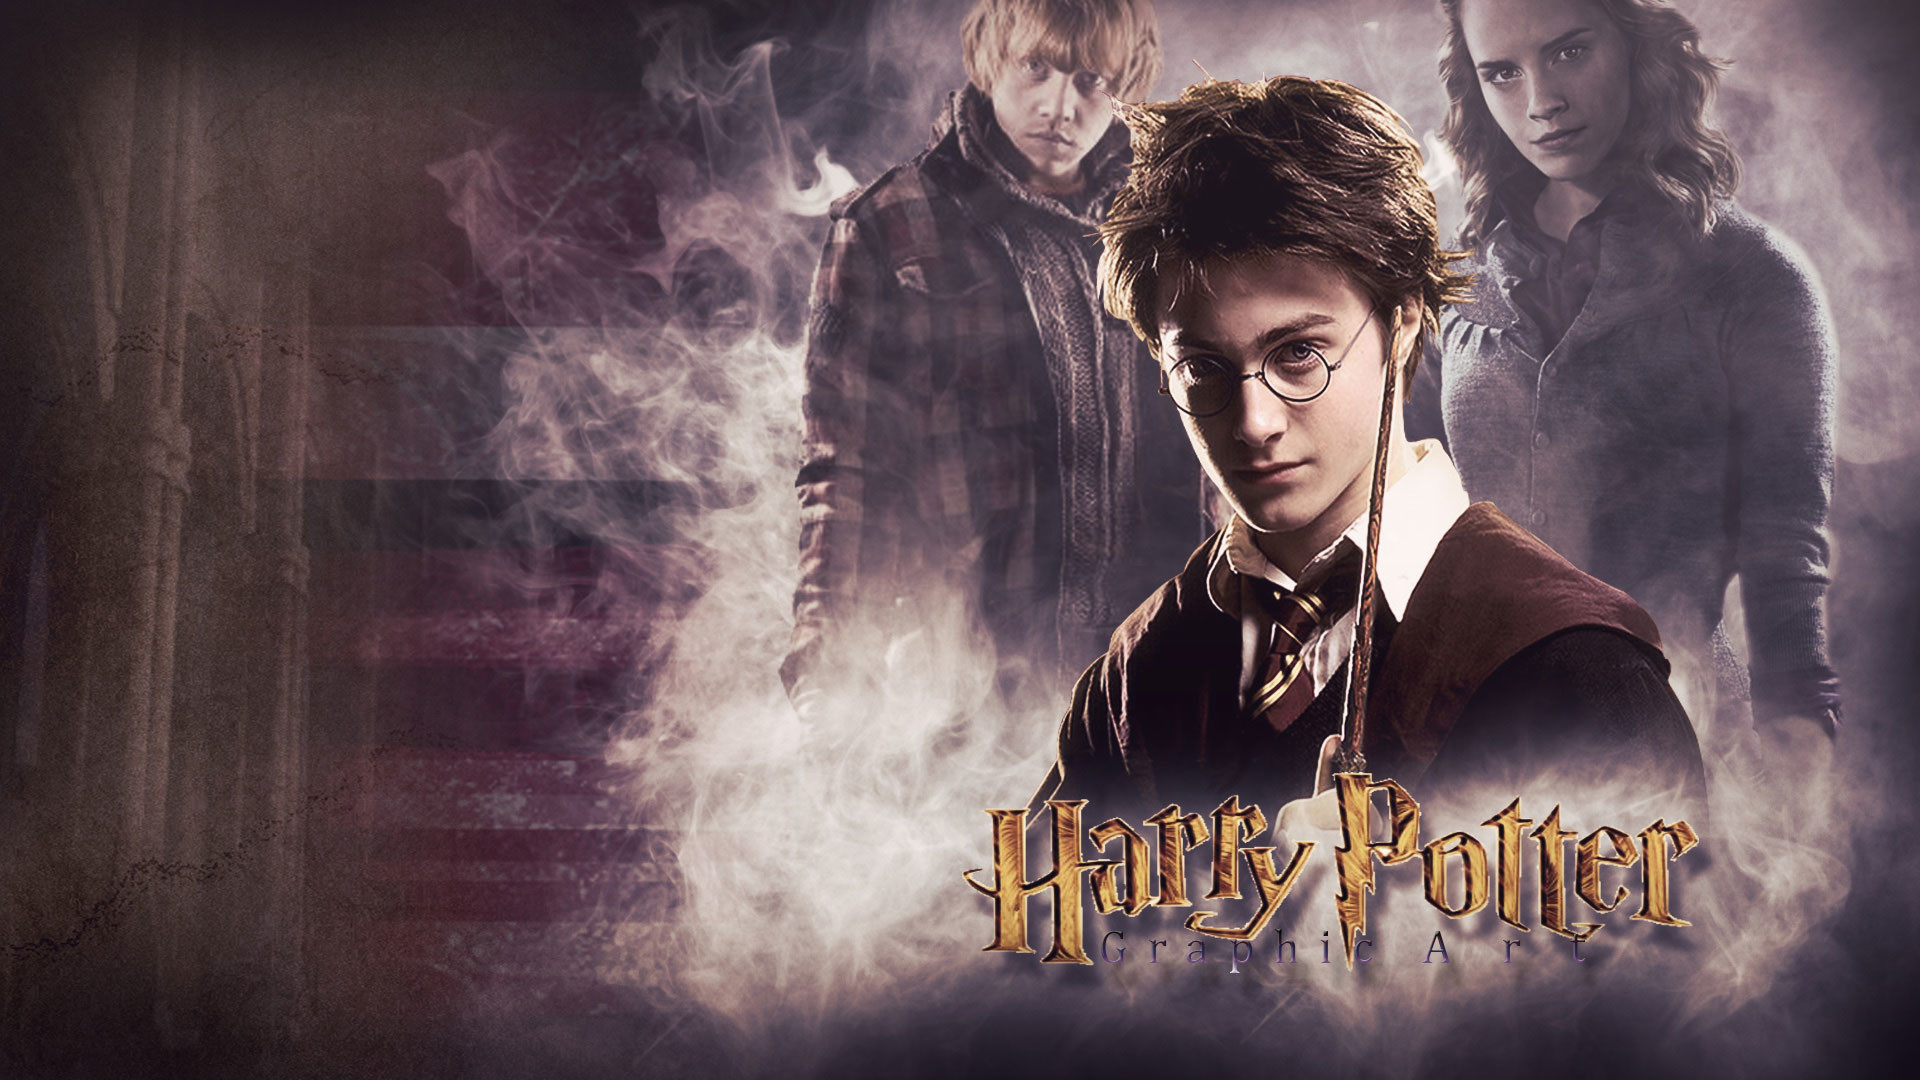 … harry potter amazing hd wallpapers high resolution all hd …